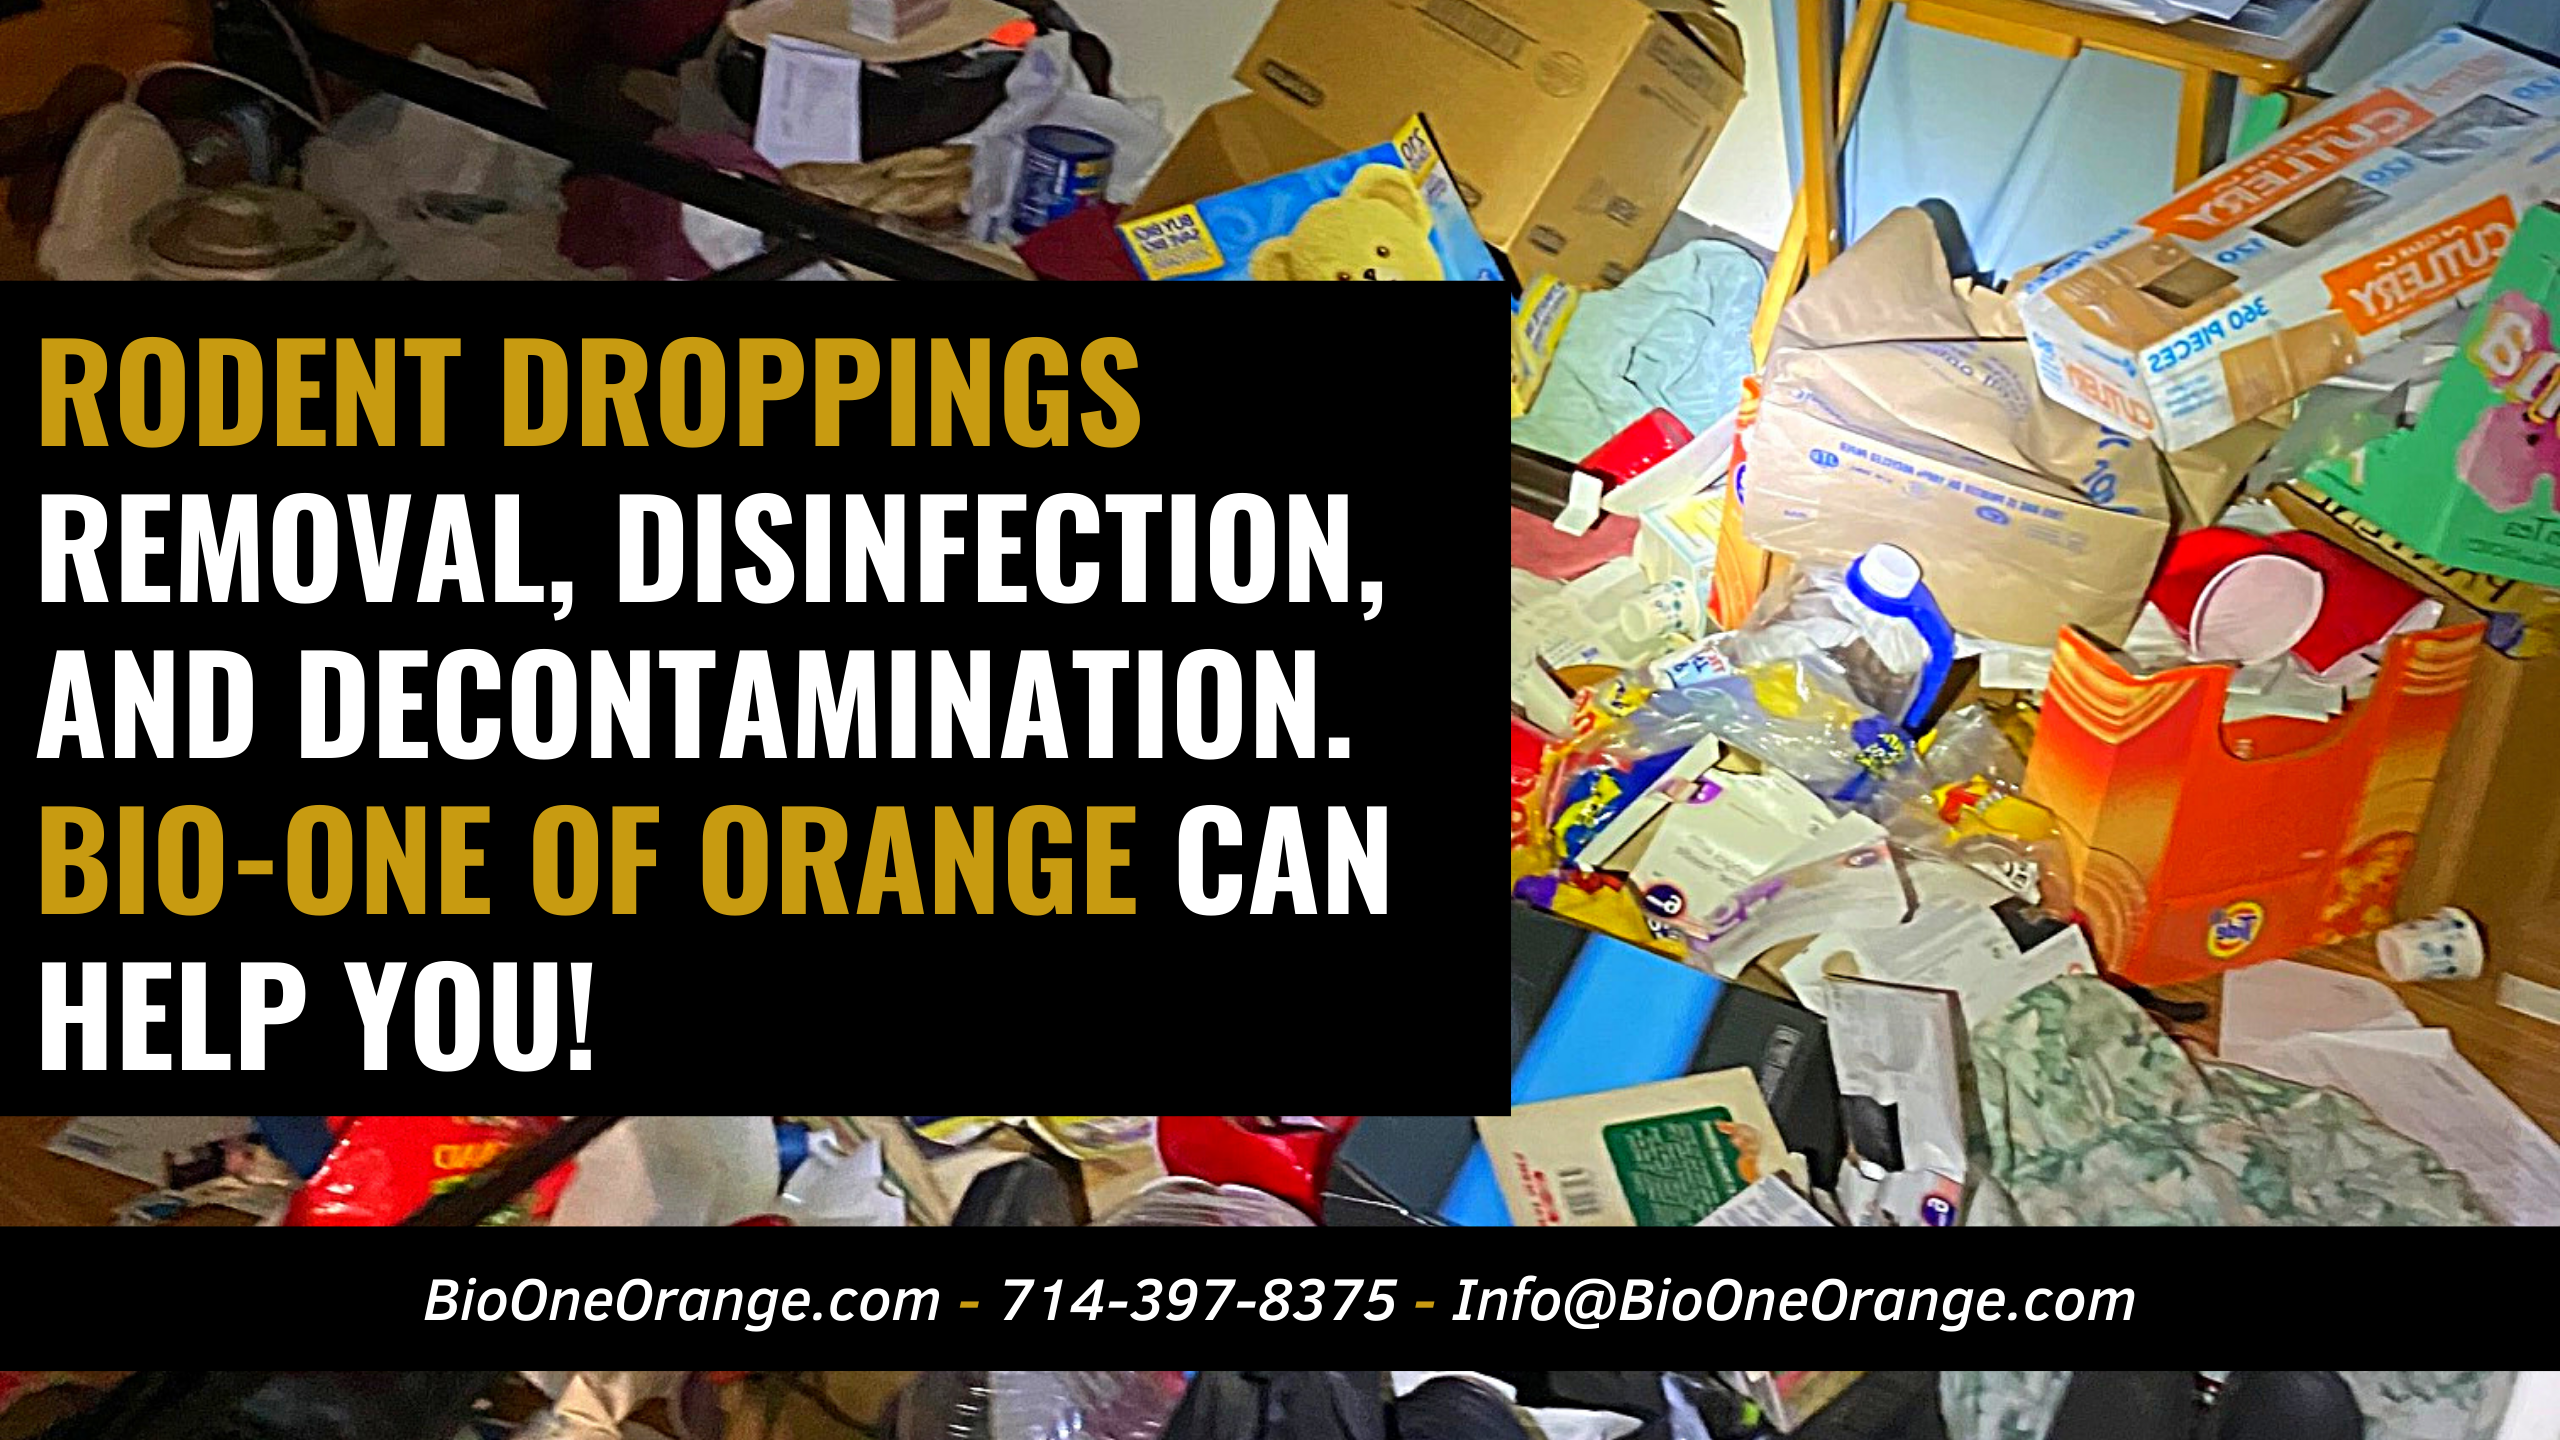 Rodent droppings removal, disinfection, and decontamination - Bio-One of Orange can help you!